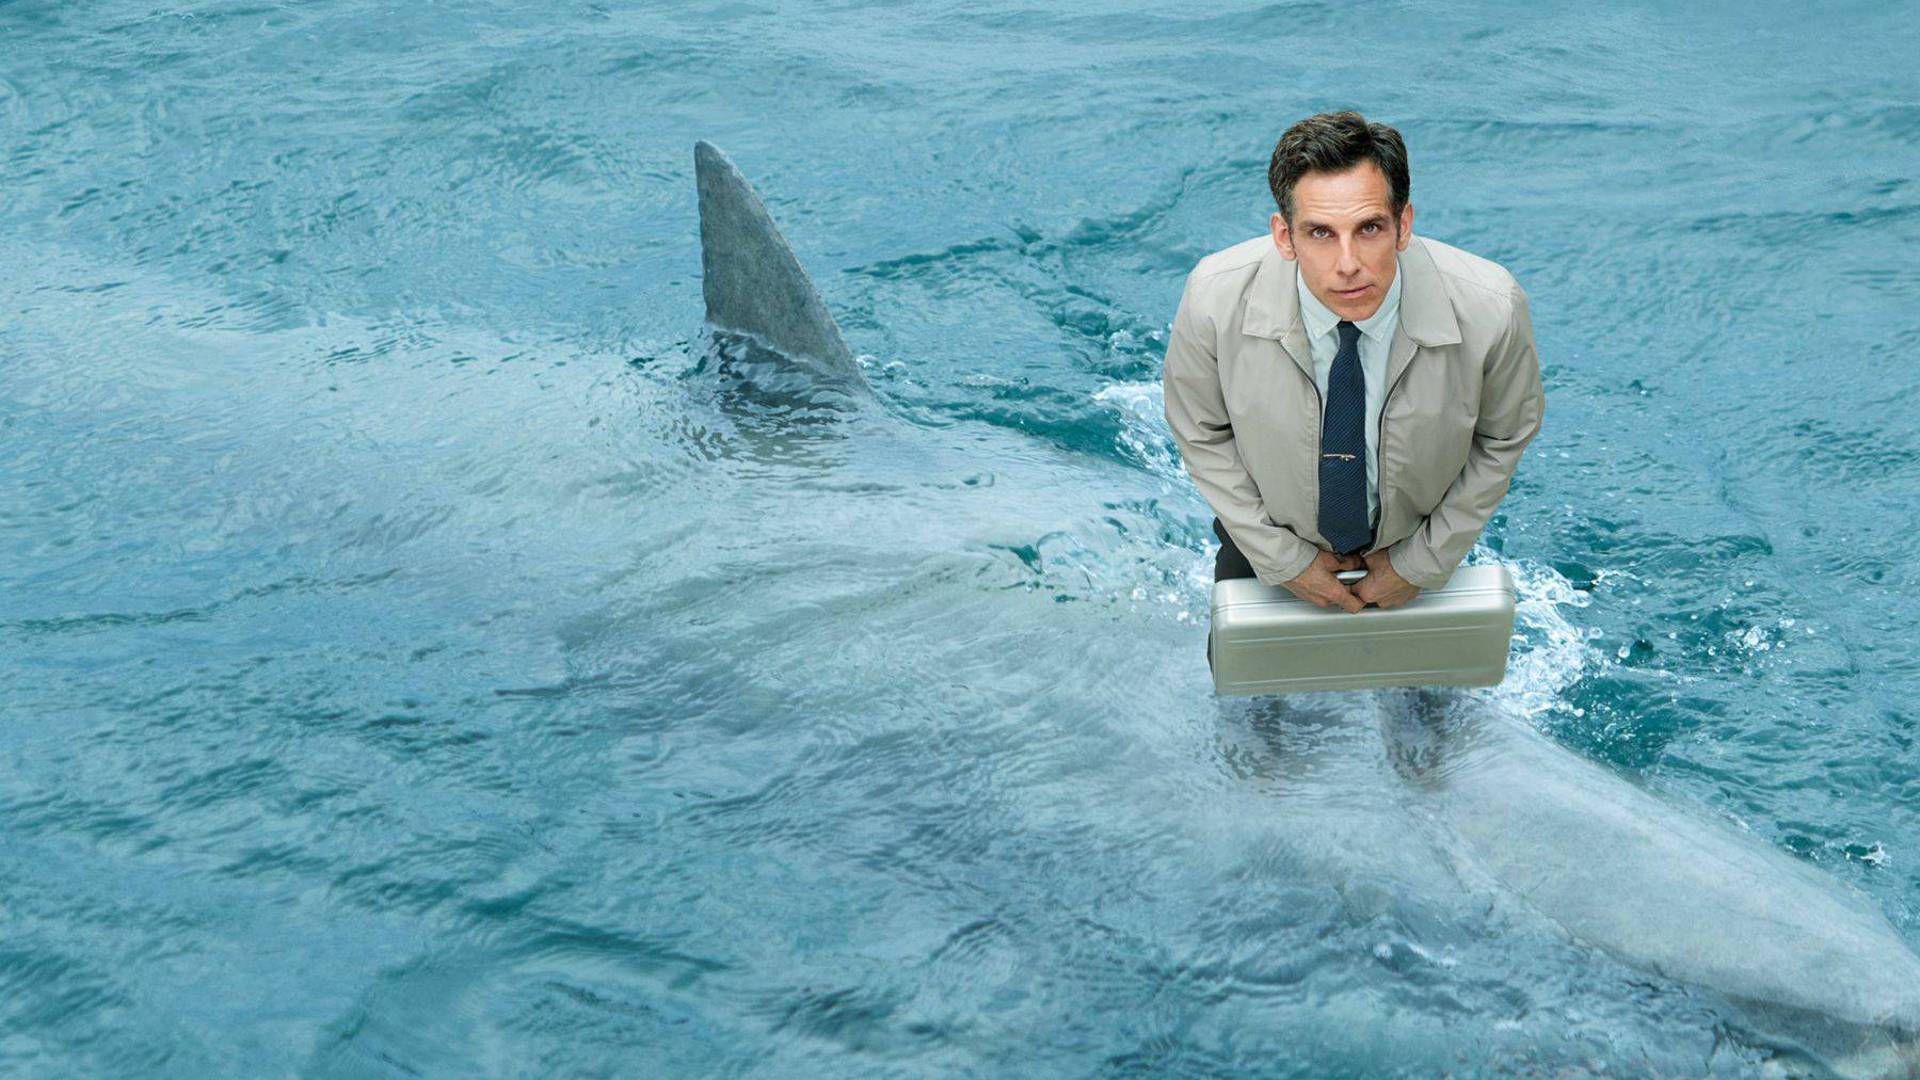 the movie life of walter mitty Discussion of themes and motifs in james thurber's the secret life of walter mitty enotes critical analyses help you gain a deeper understanding of the secret life of walter mitty so you.